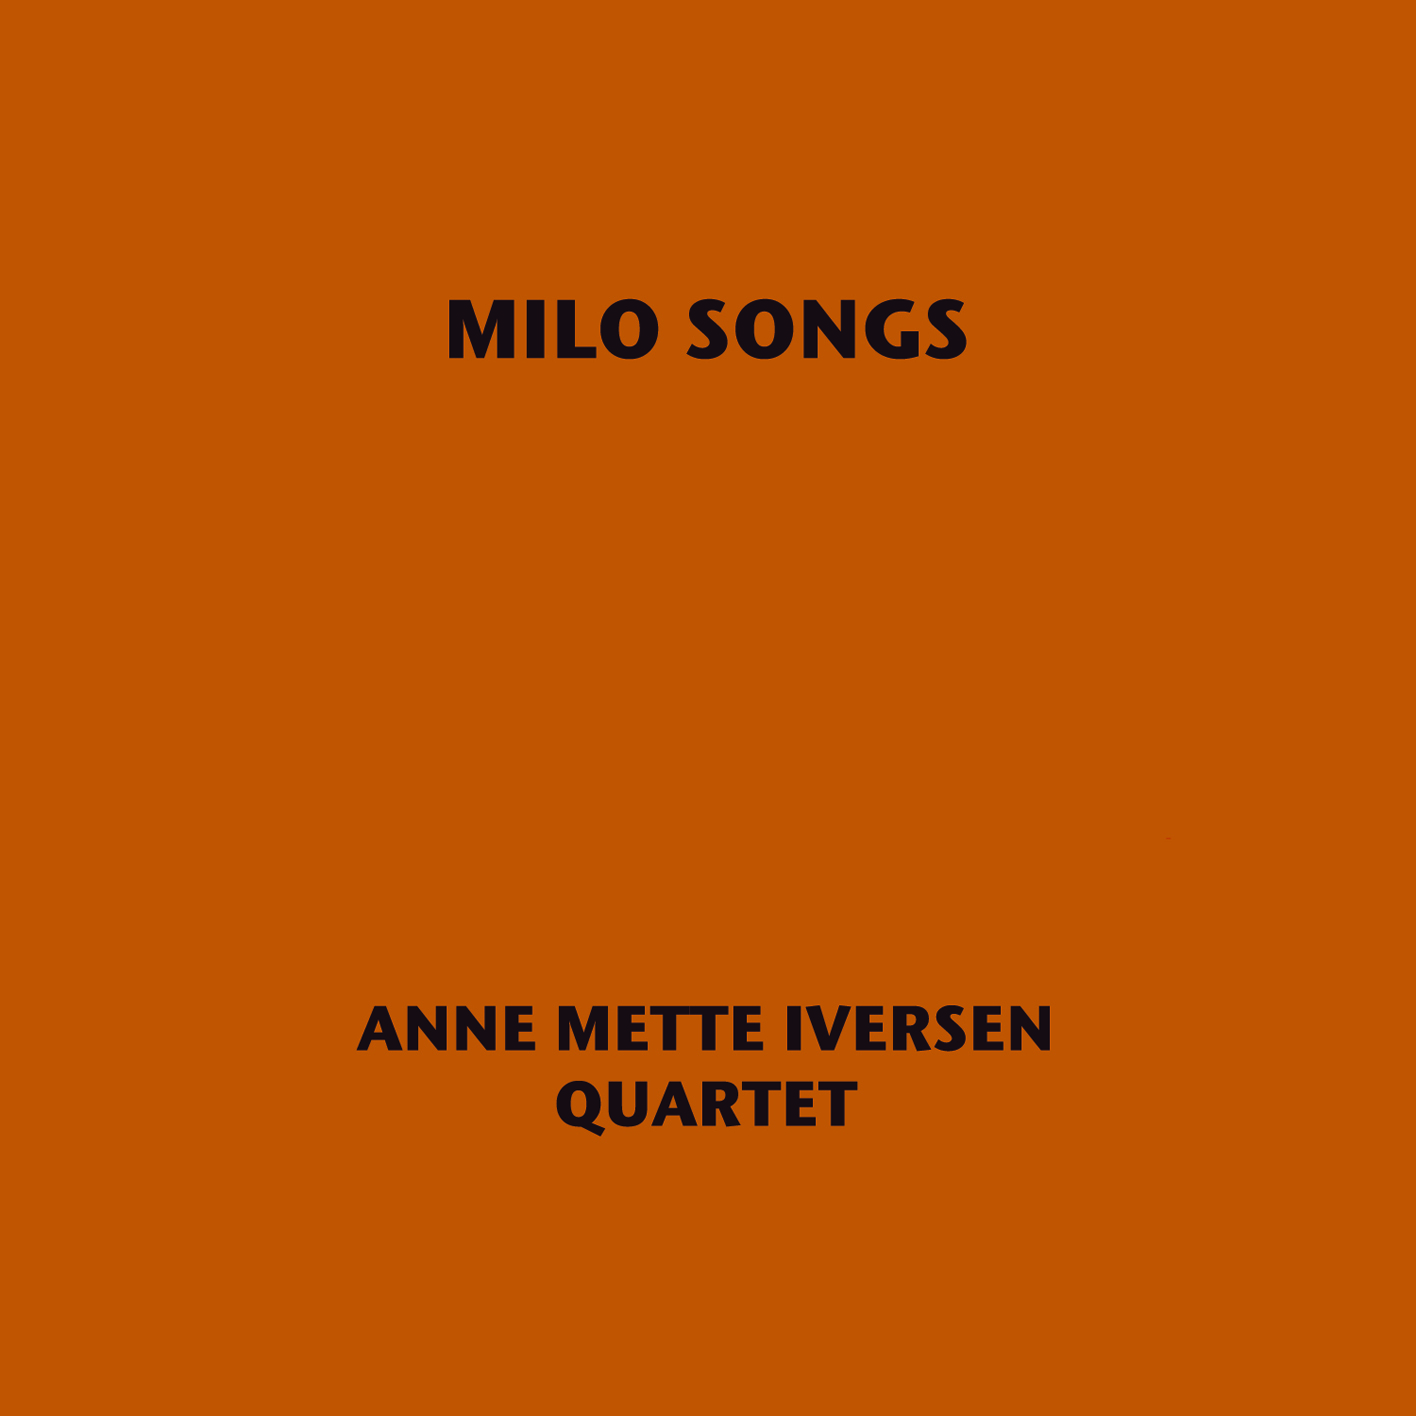 Milo%20Songs%20cover